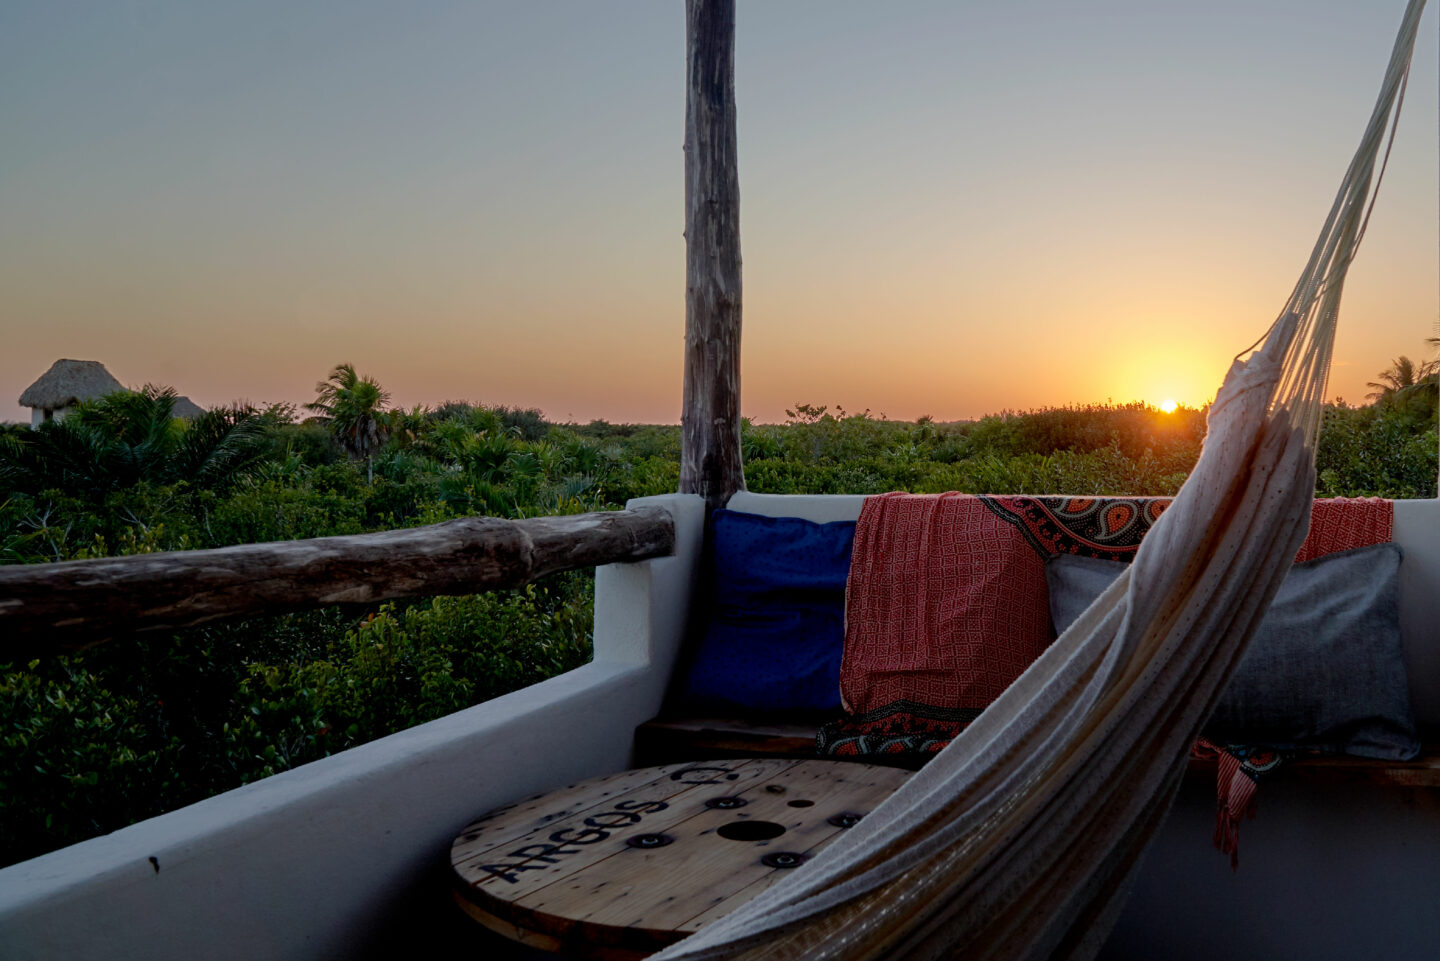 Sunset as seen from our terrace at LunArena Hotel. Make sure to stay on the jungle side for better views.